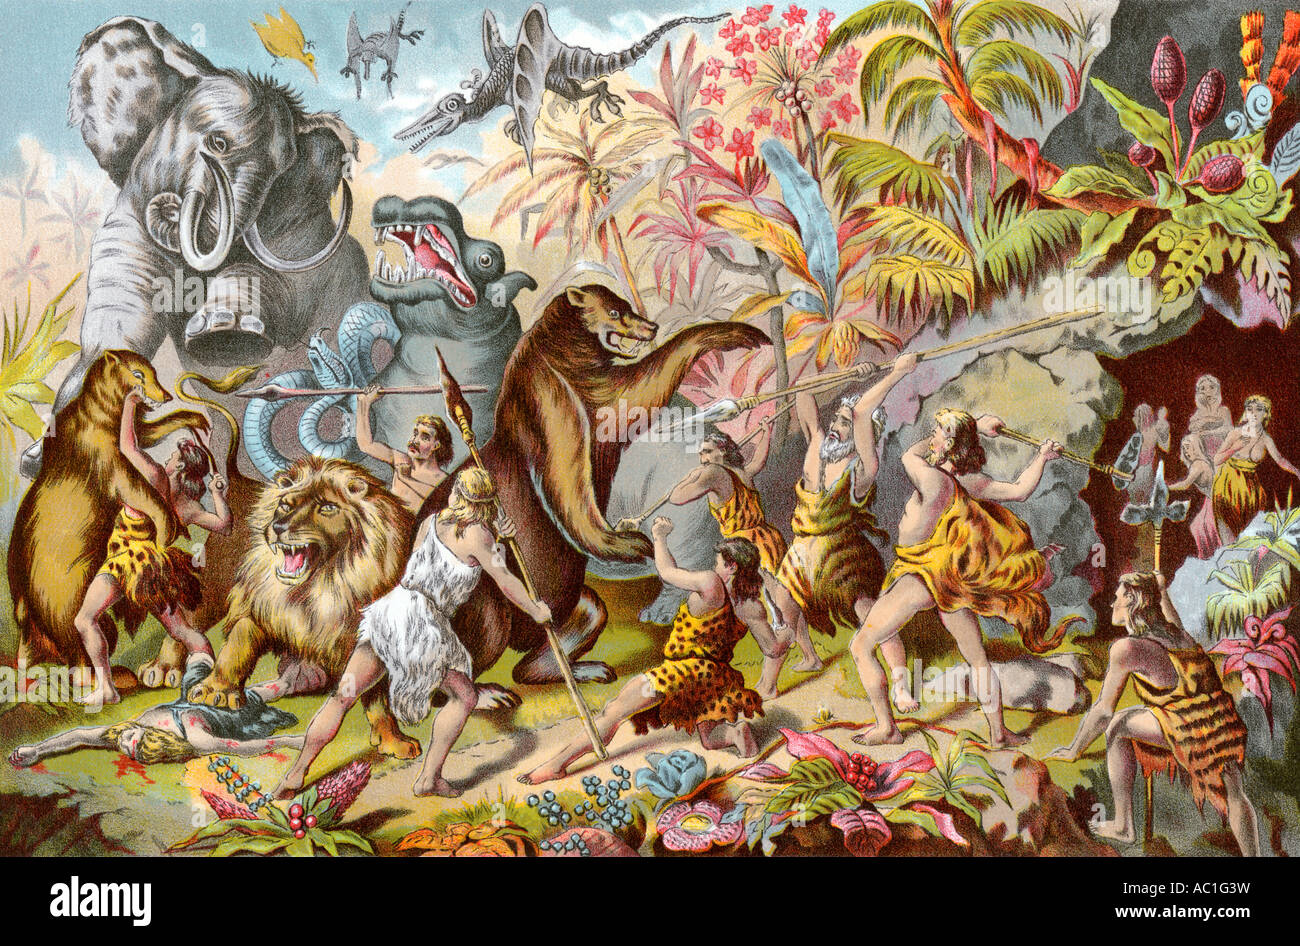 Cave dwellers contending with prehistoric monsters according to a 19th century illustrator. Color halftone of an - Stock Image